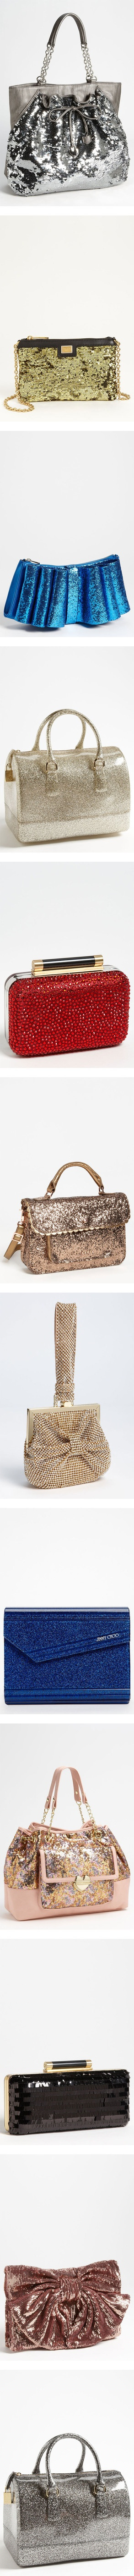 """""""NORDSTROM: Bags that Sparkle"""" by nordstrom on Polyvore"""